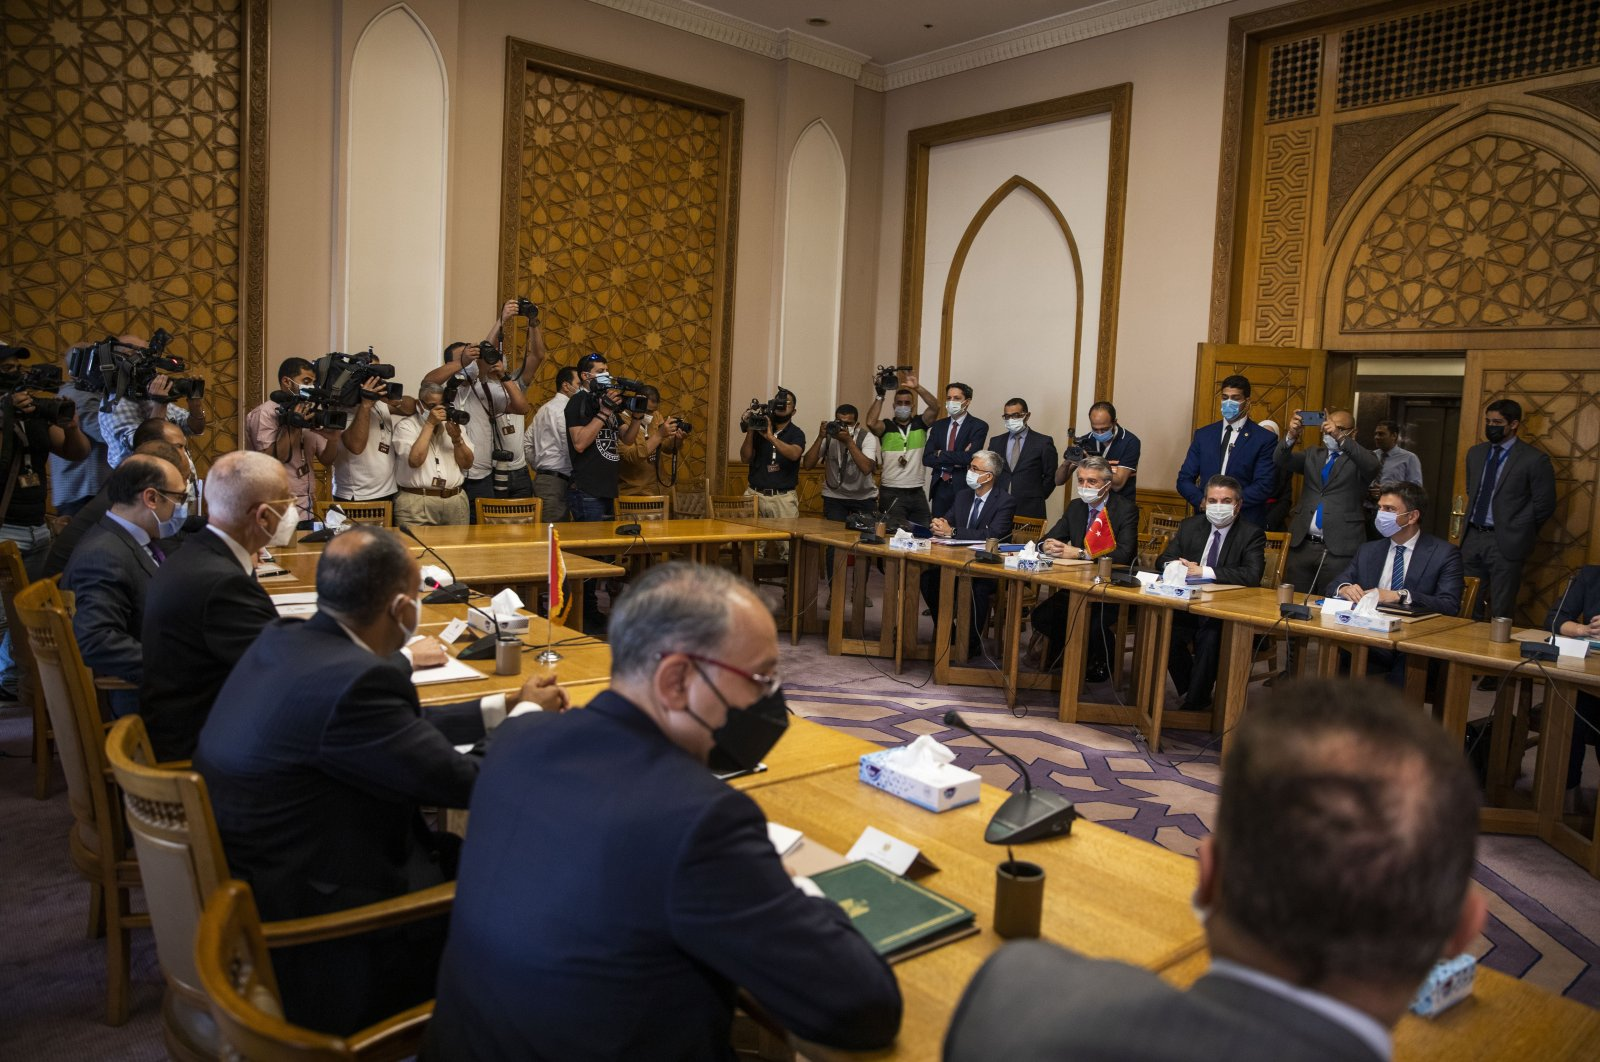 Turkish Foreign Ministry Deputy Sedat Onal, seated (2-R), meets with Hamdi Sanad Loza, Egyptian deputy foreign minister, (4-L), and their delegations, at the Foreign Ministry in Cairo, Egypt, Wednesday, May 5, 2021. (AP File Photo)